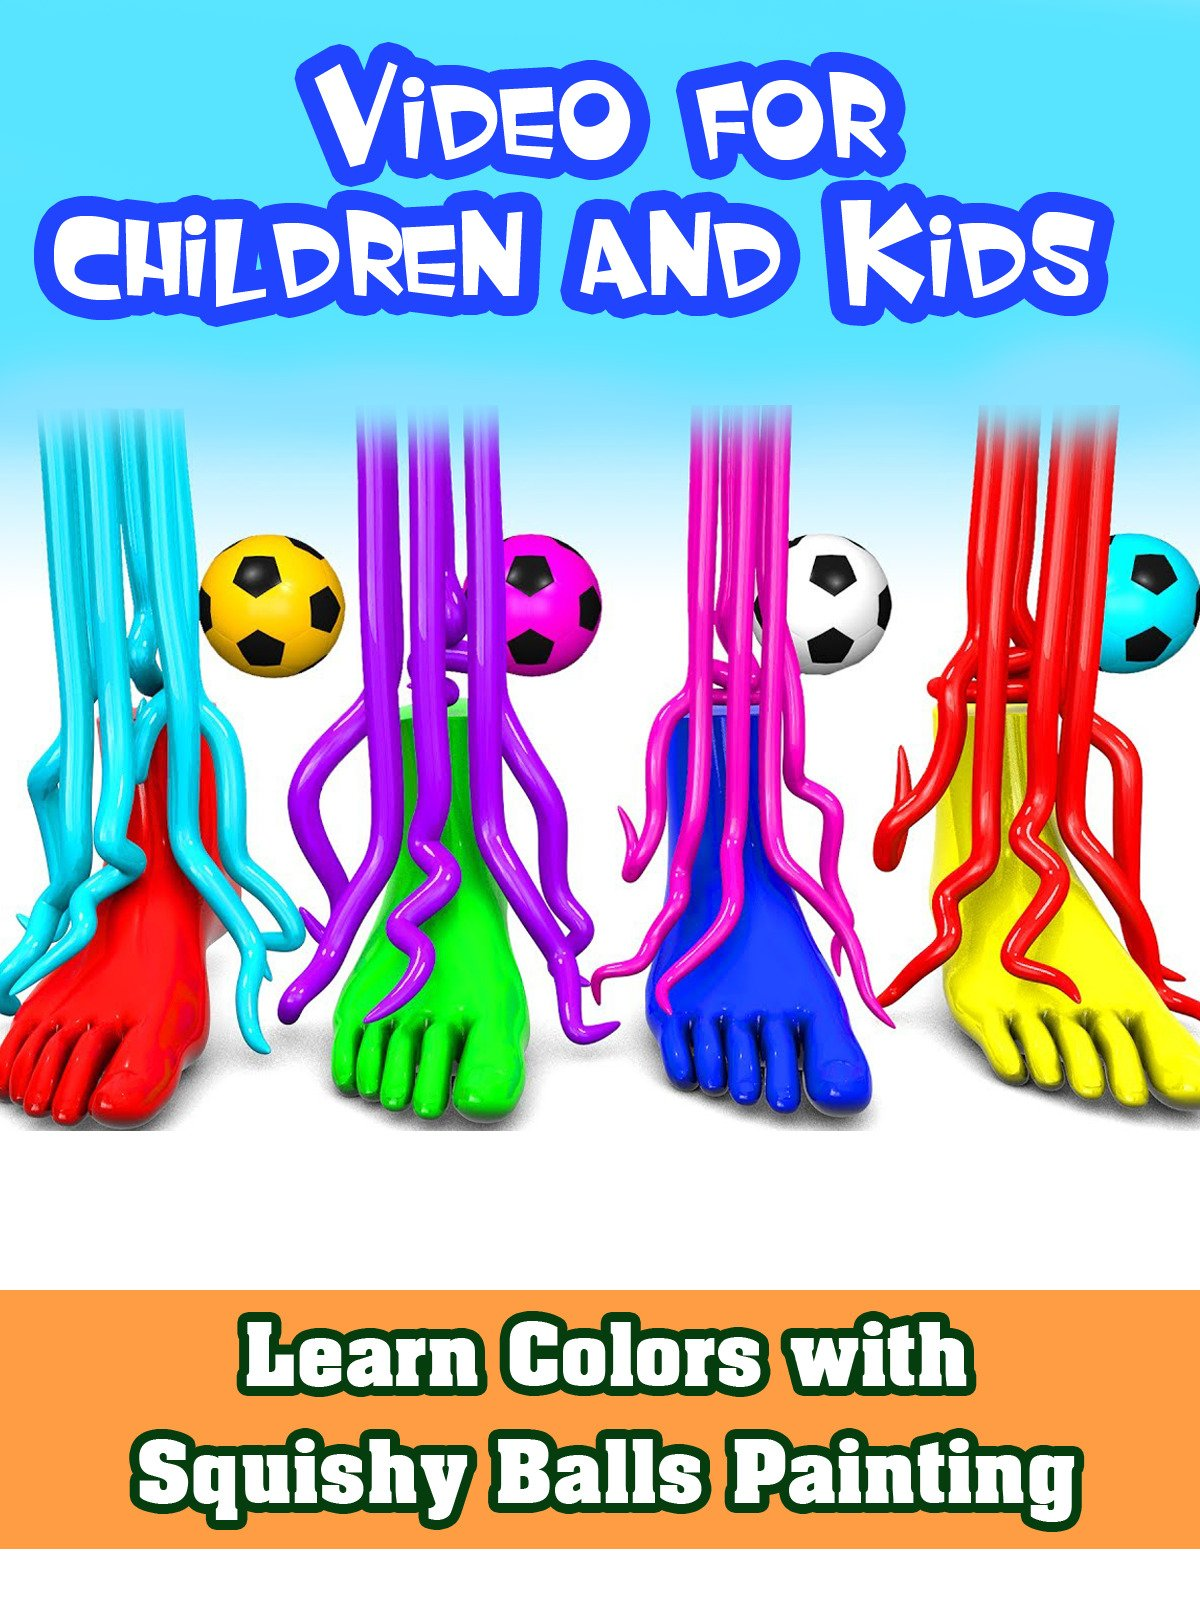 Learn Colors With Pasta Machine Making Painting Foot on Amazon Prime Video UK